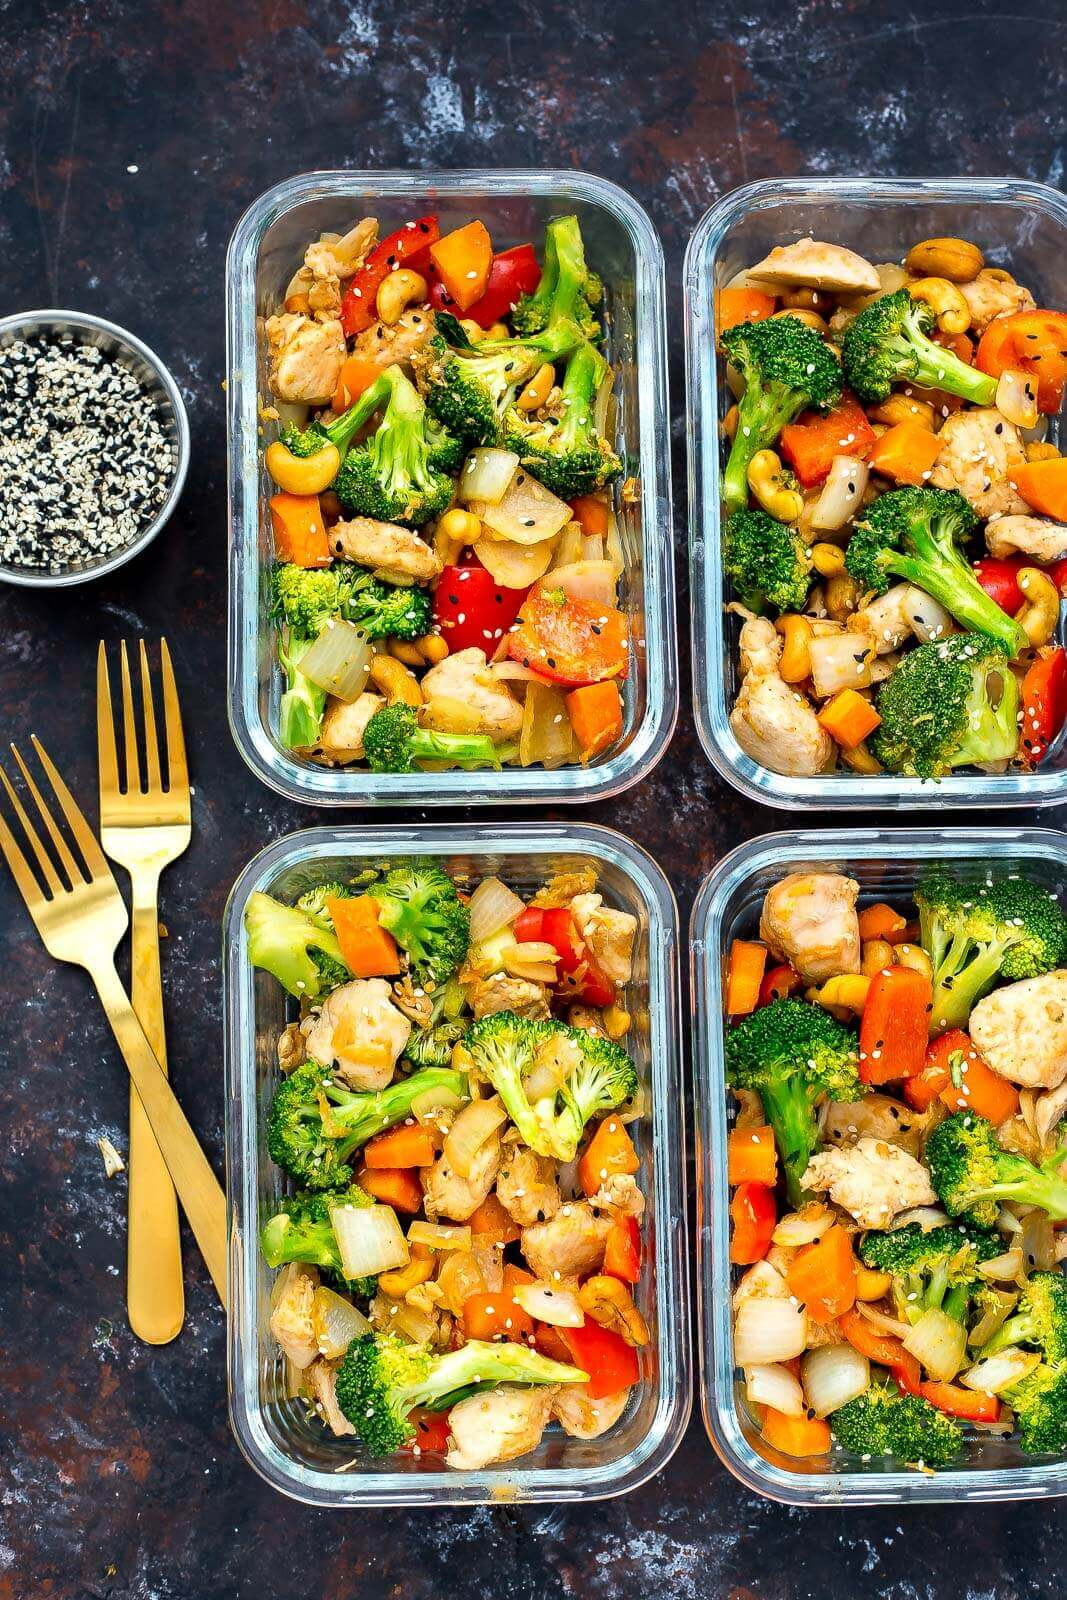 Healthy Meal Prep Lunches  20 Easy Healthy Meal Prep Lunch Ideas for Work The Girl